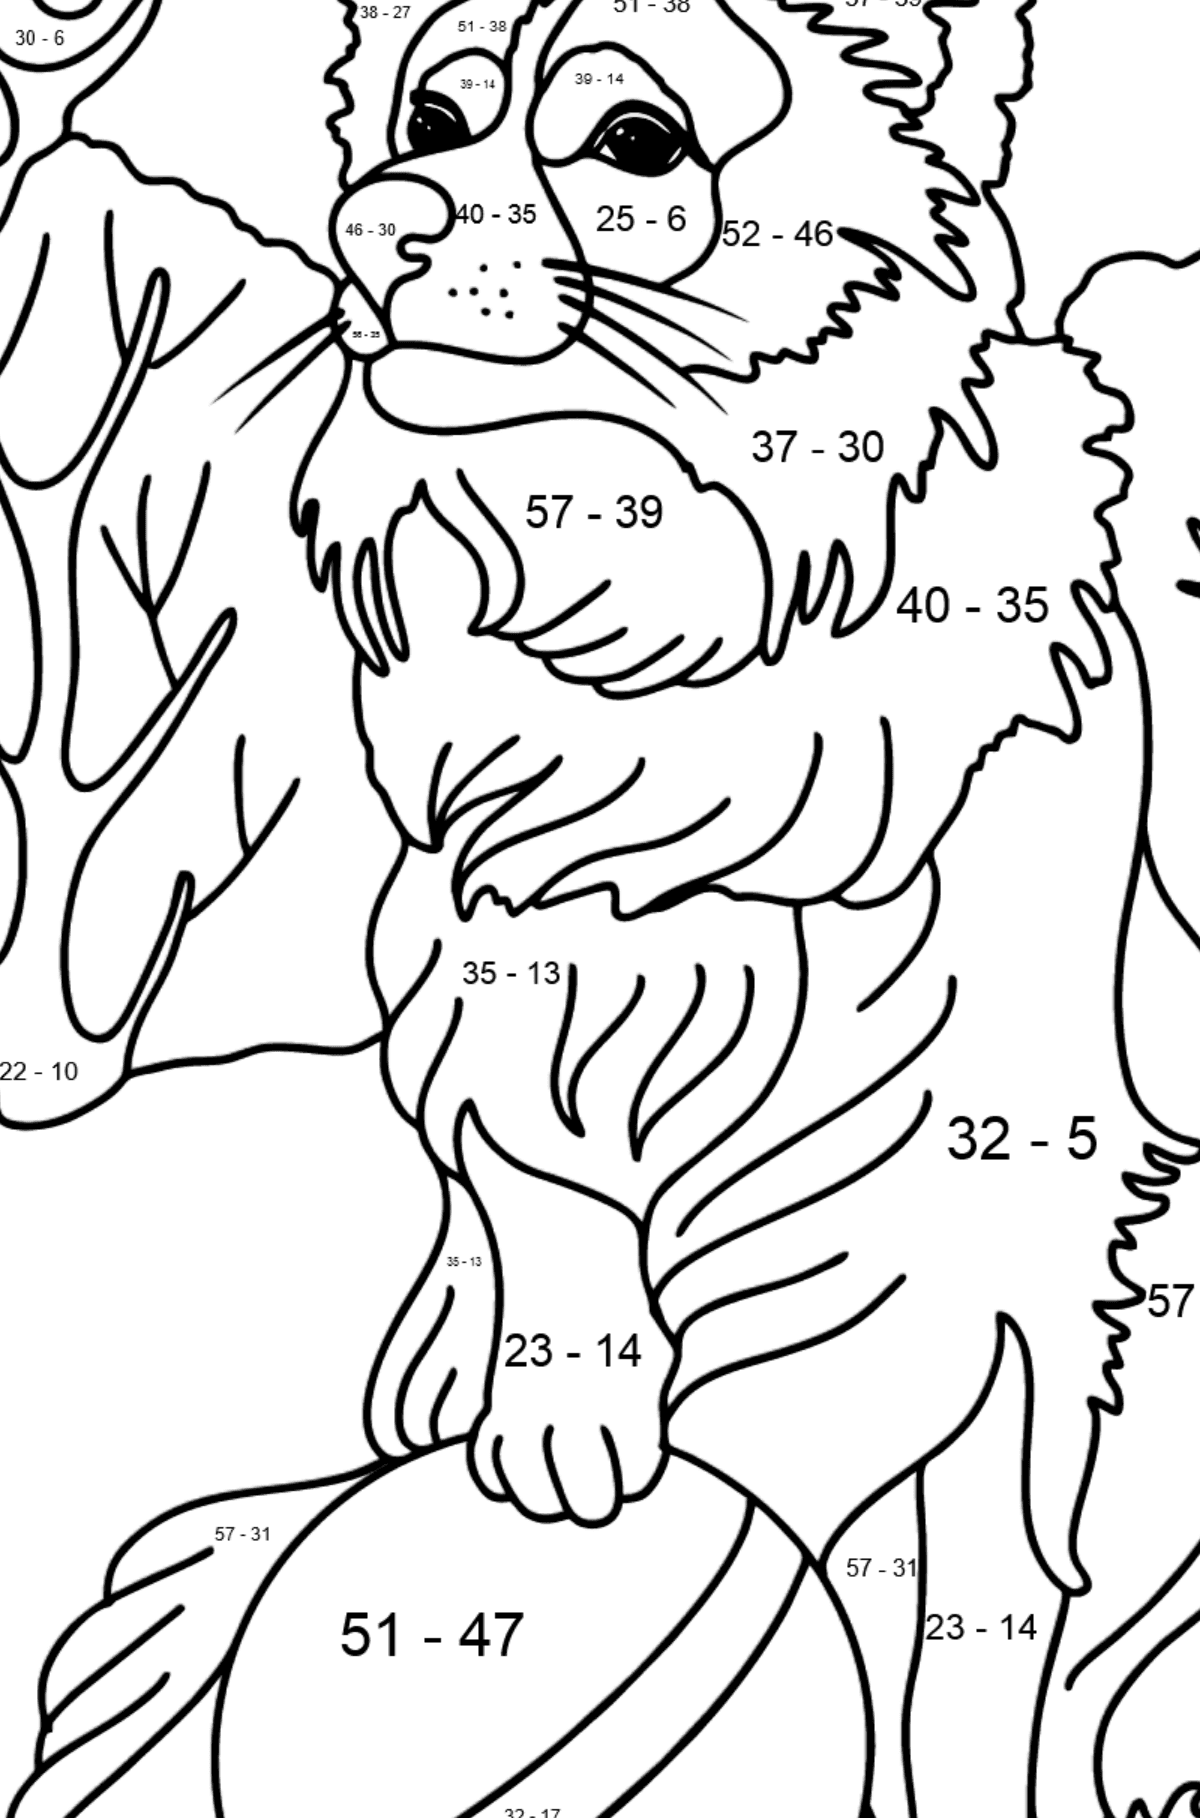 Collie coloring page - Math Coloring - Subtraction for Kids